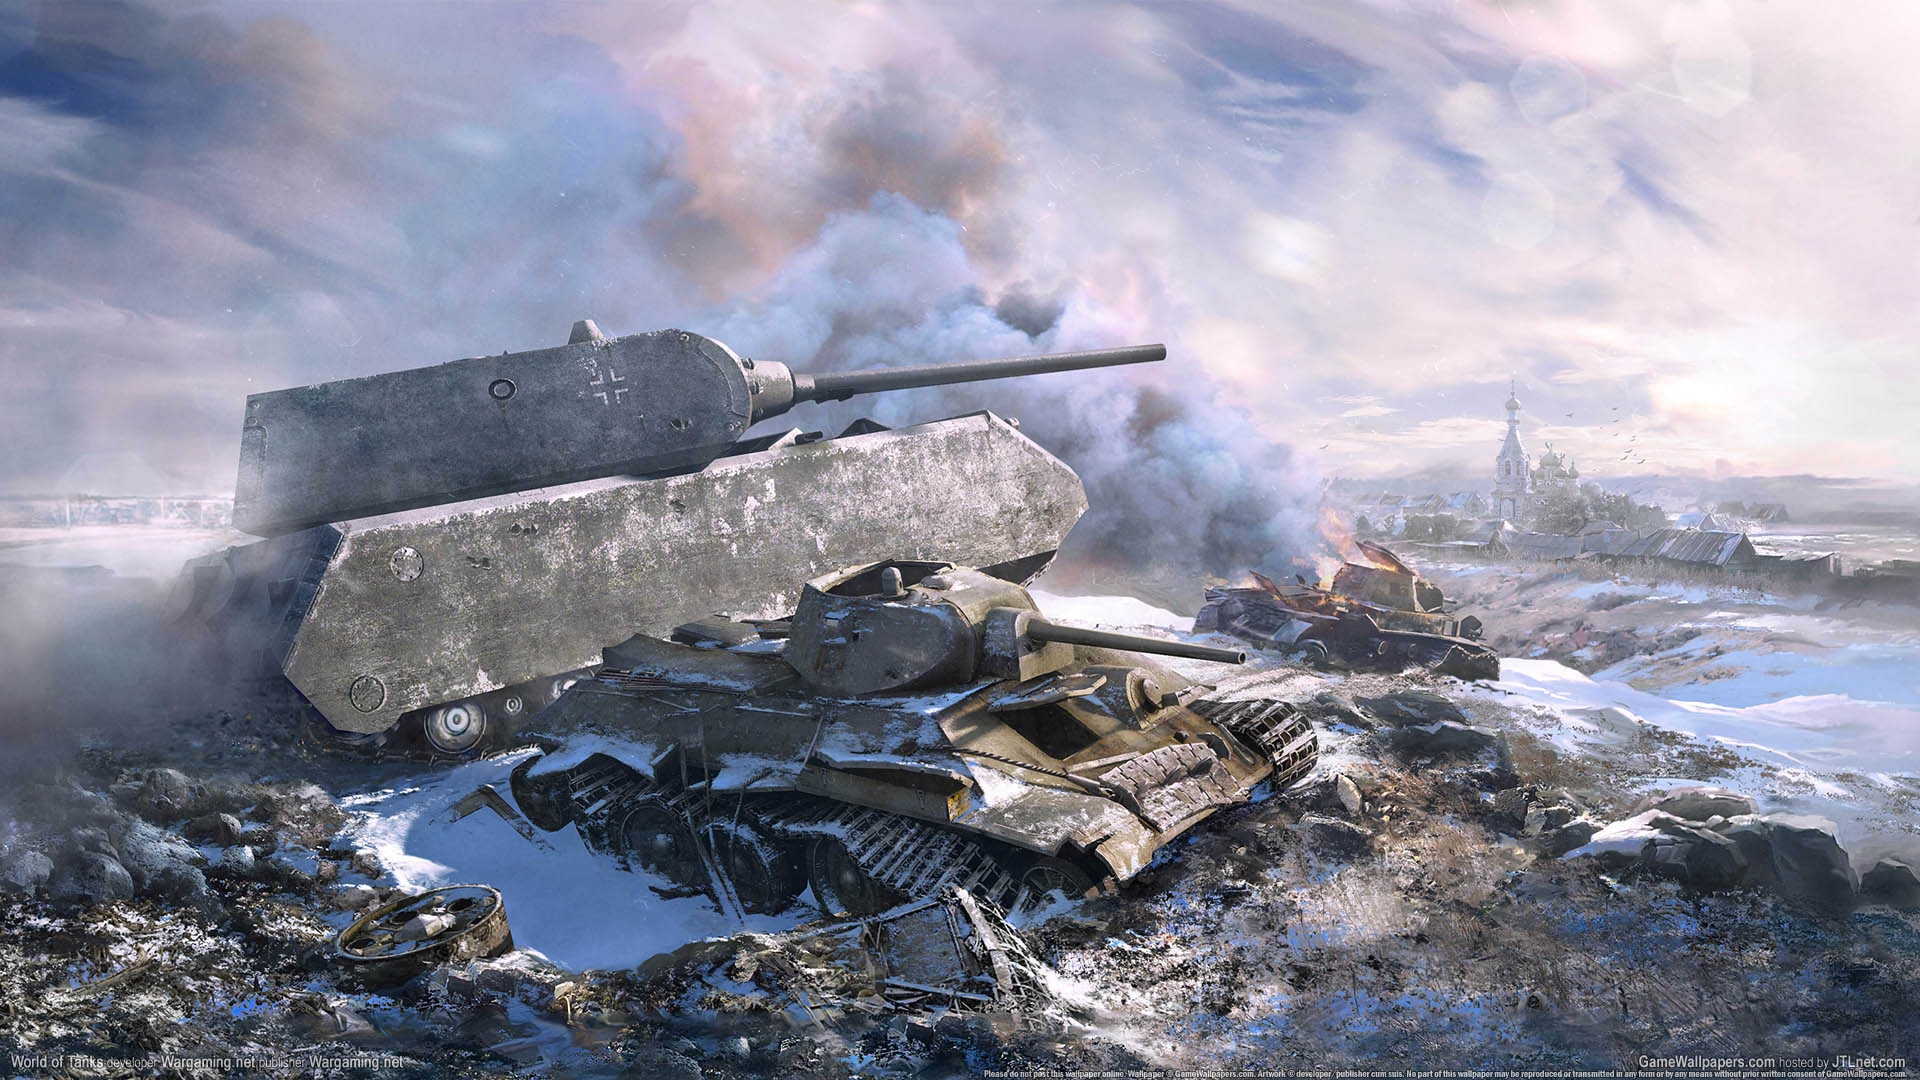 World of Tanks wallpaper 05 1920x1080